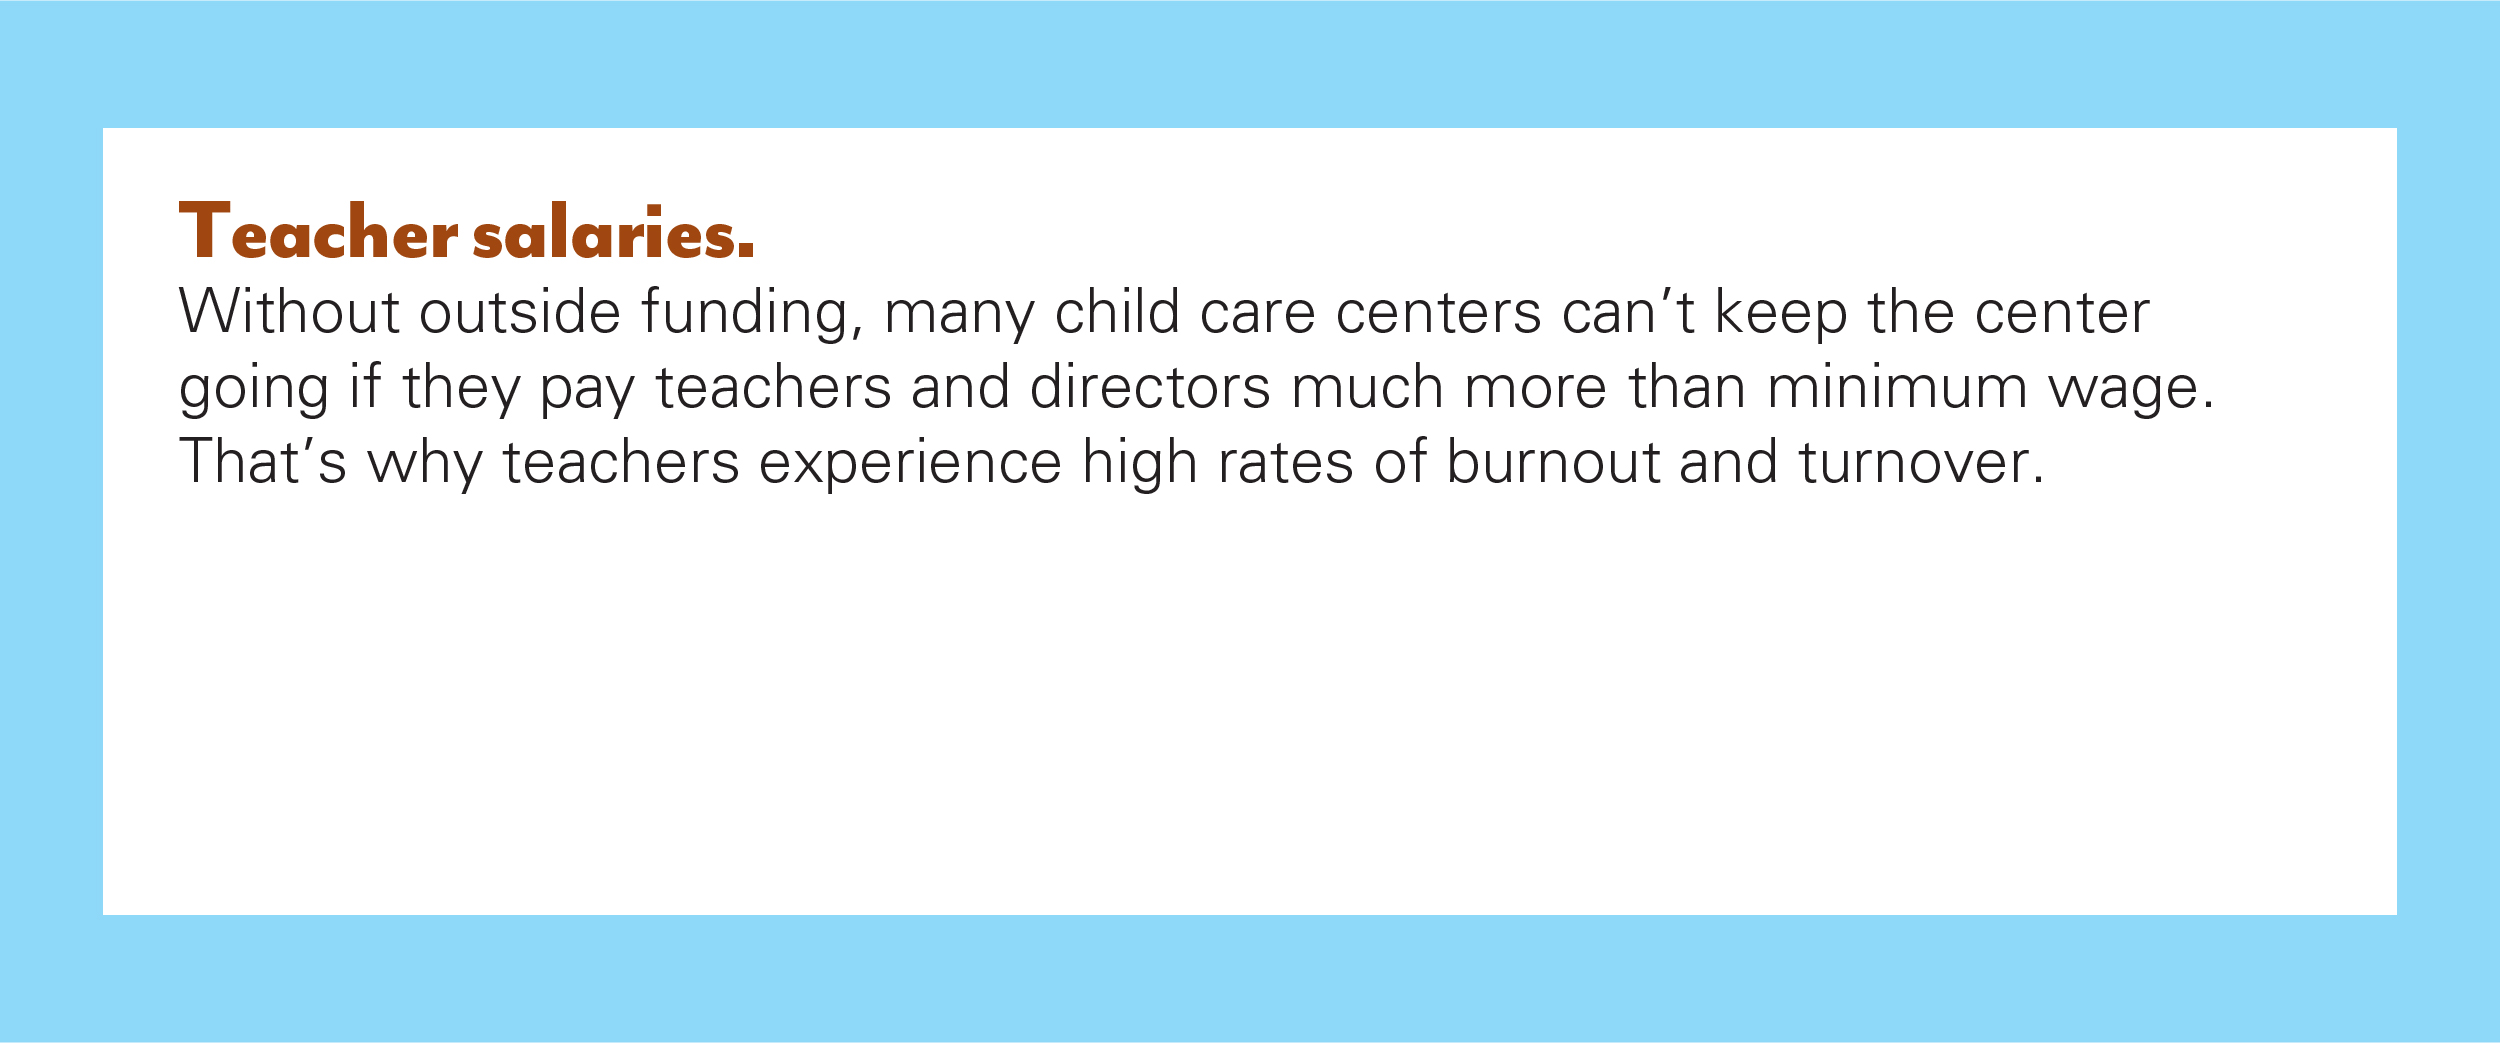 One of the barriers to child care in Kansas.